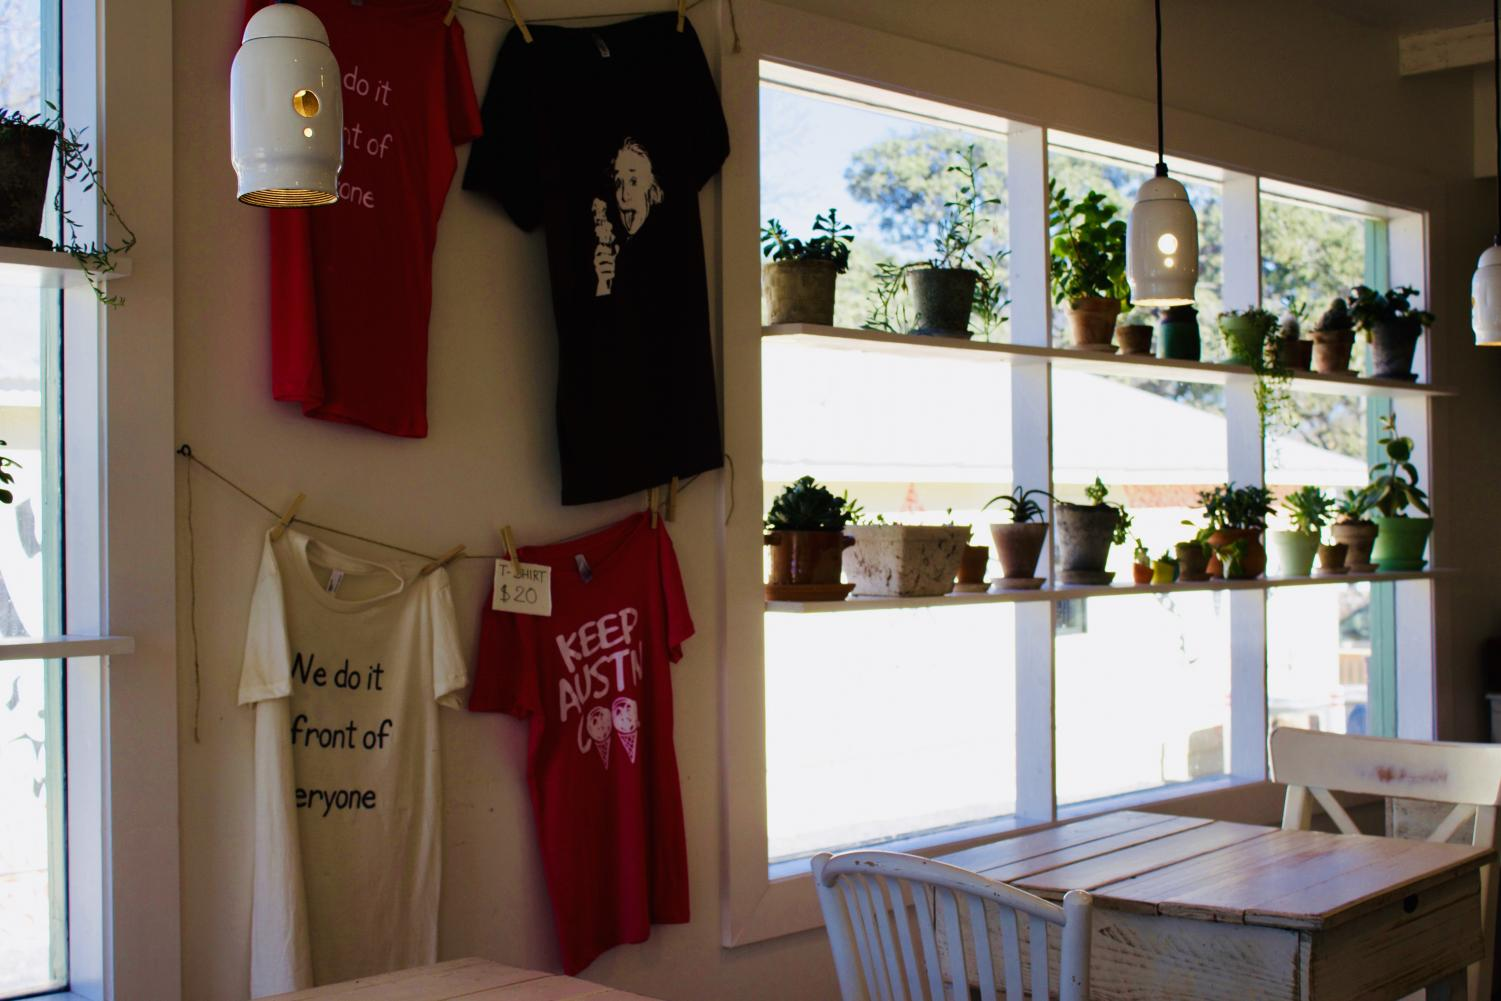 The+interior+of+Dolce+Neve+is+decorated+with+tiny+succulents+and+the+business%27+brand+merchandise.